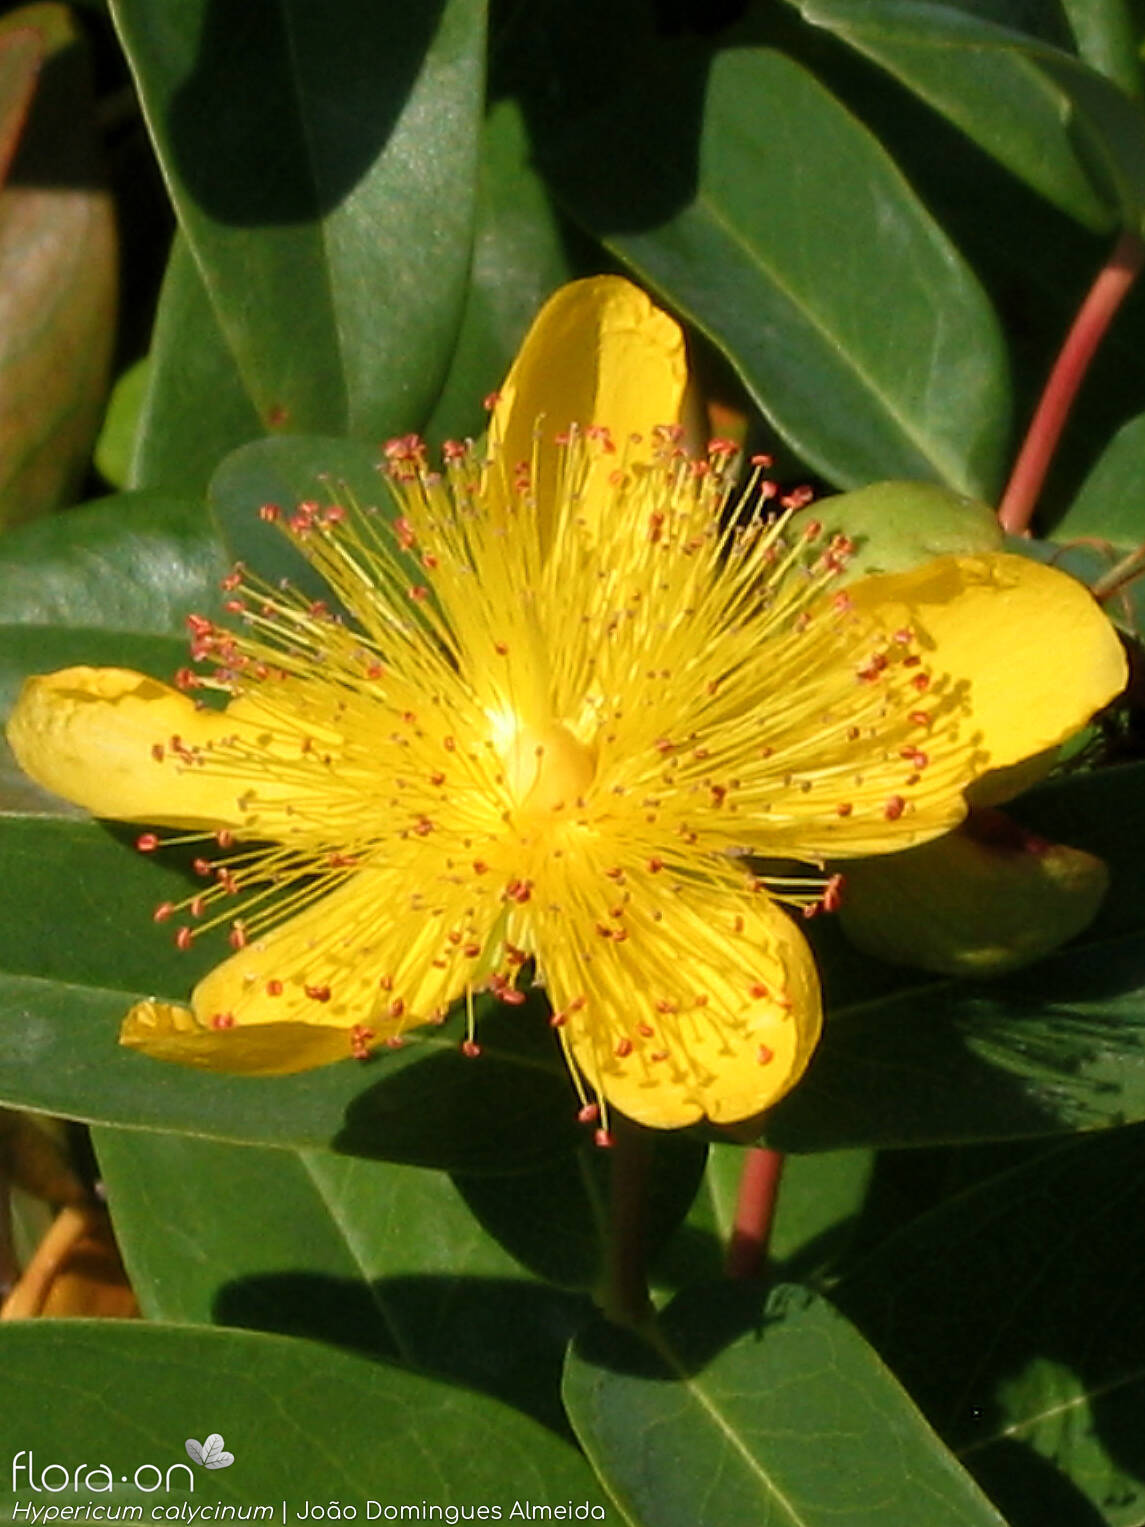 Hypericum calycinum - Flor (close-up) | João D. Almeida; CC BY-NC 4.0